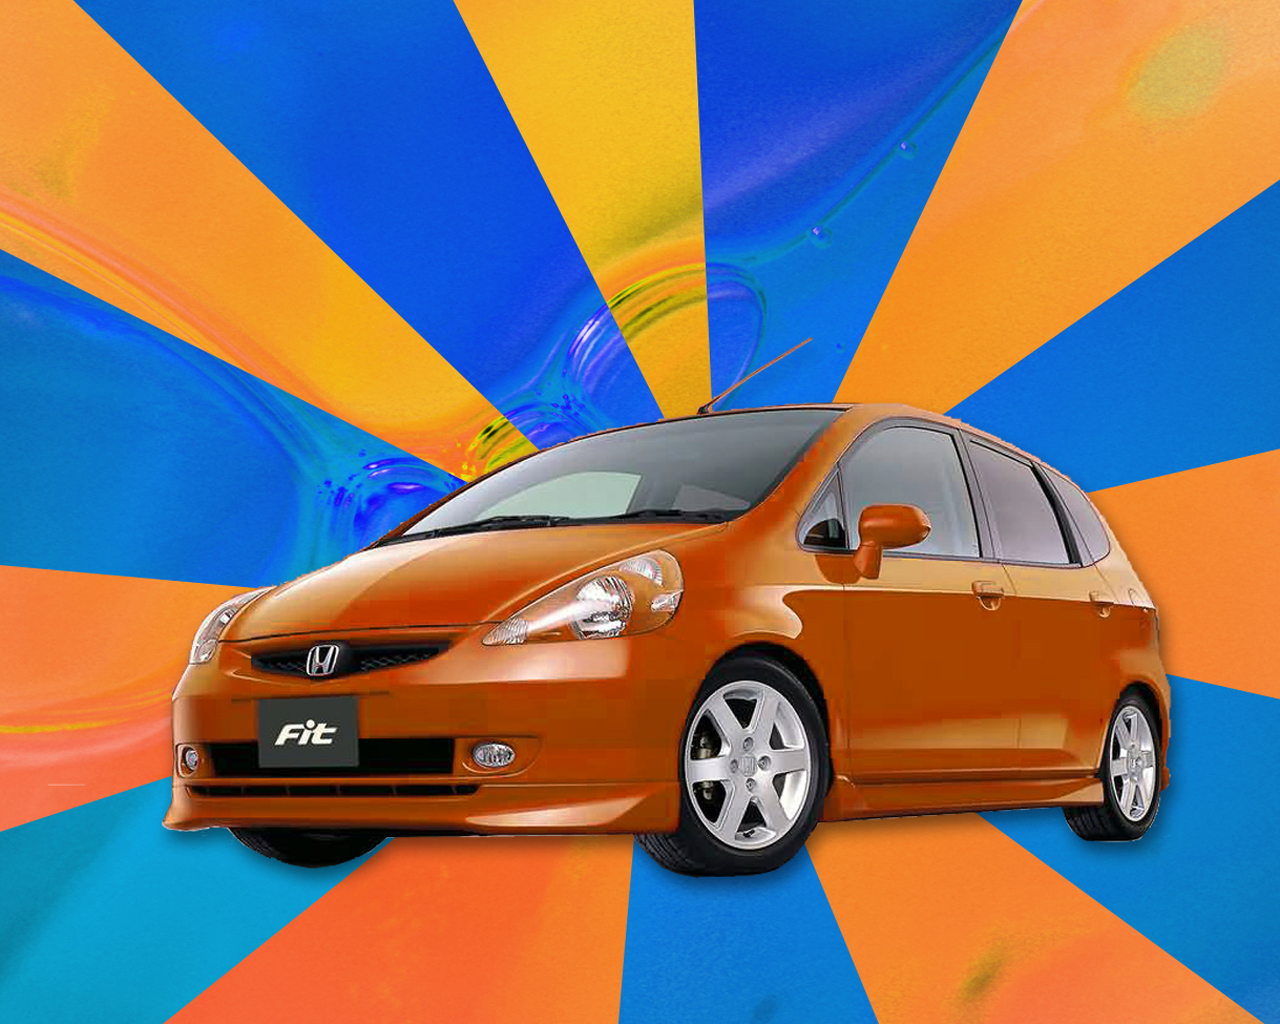 Honda fit jazz wallpaper4